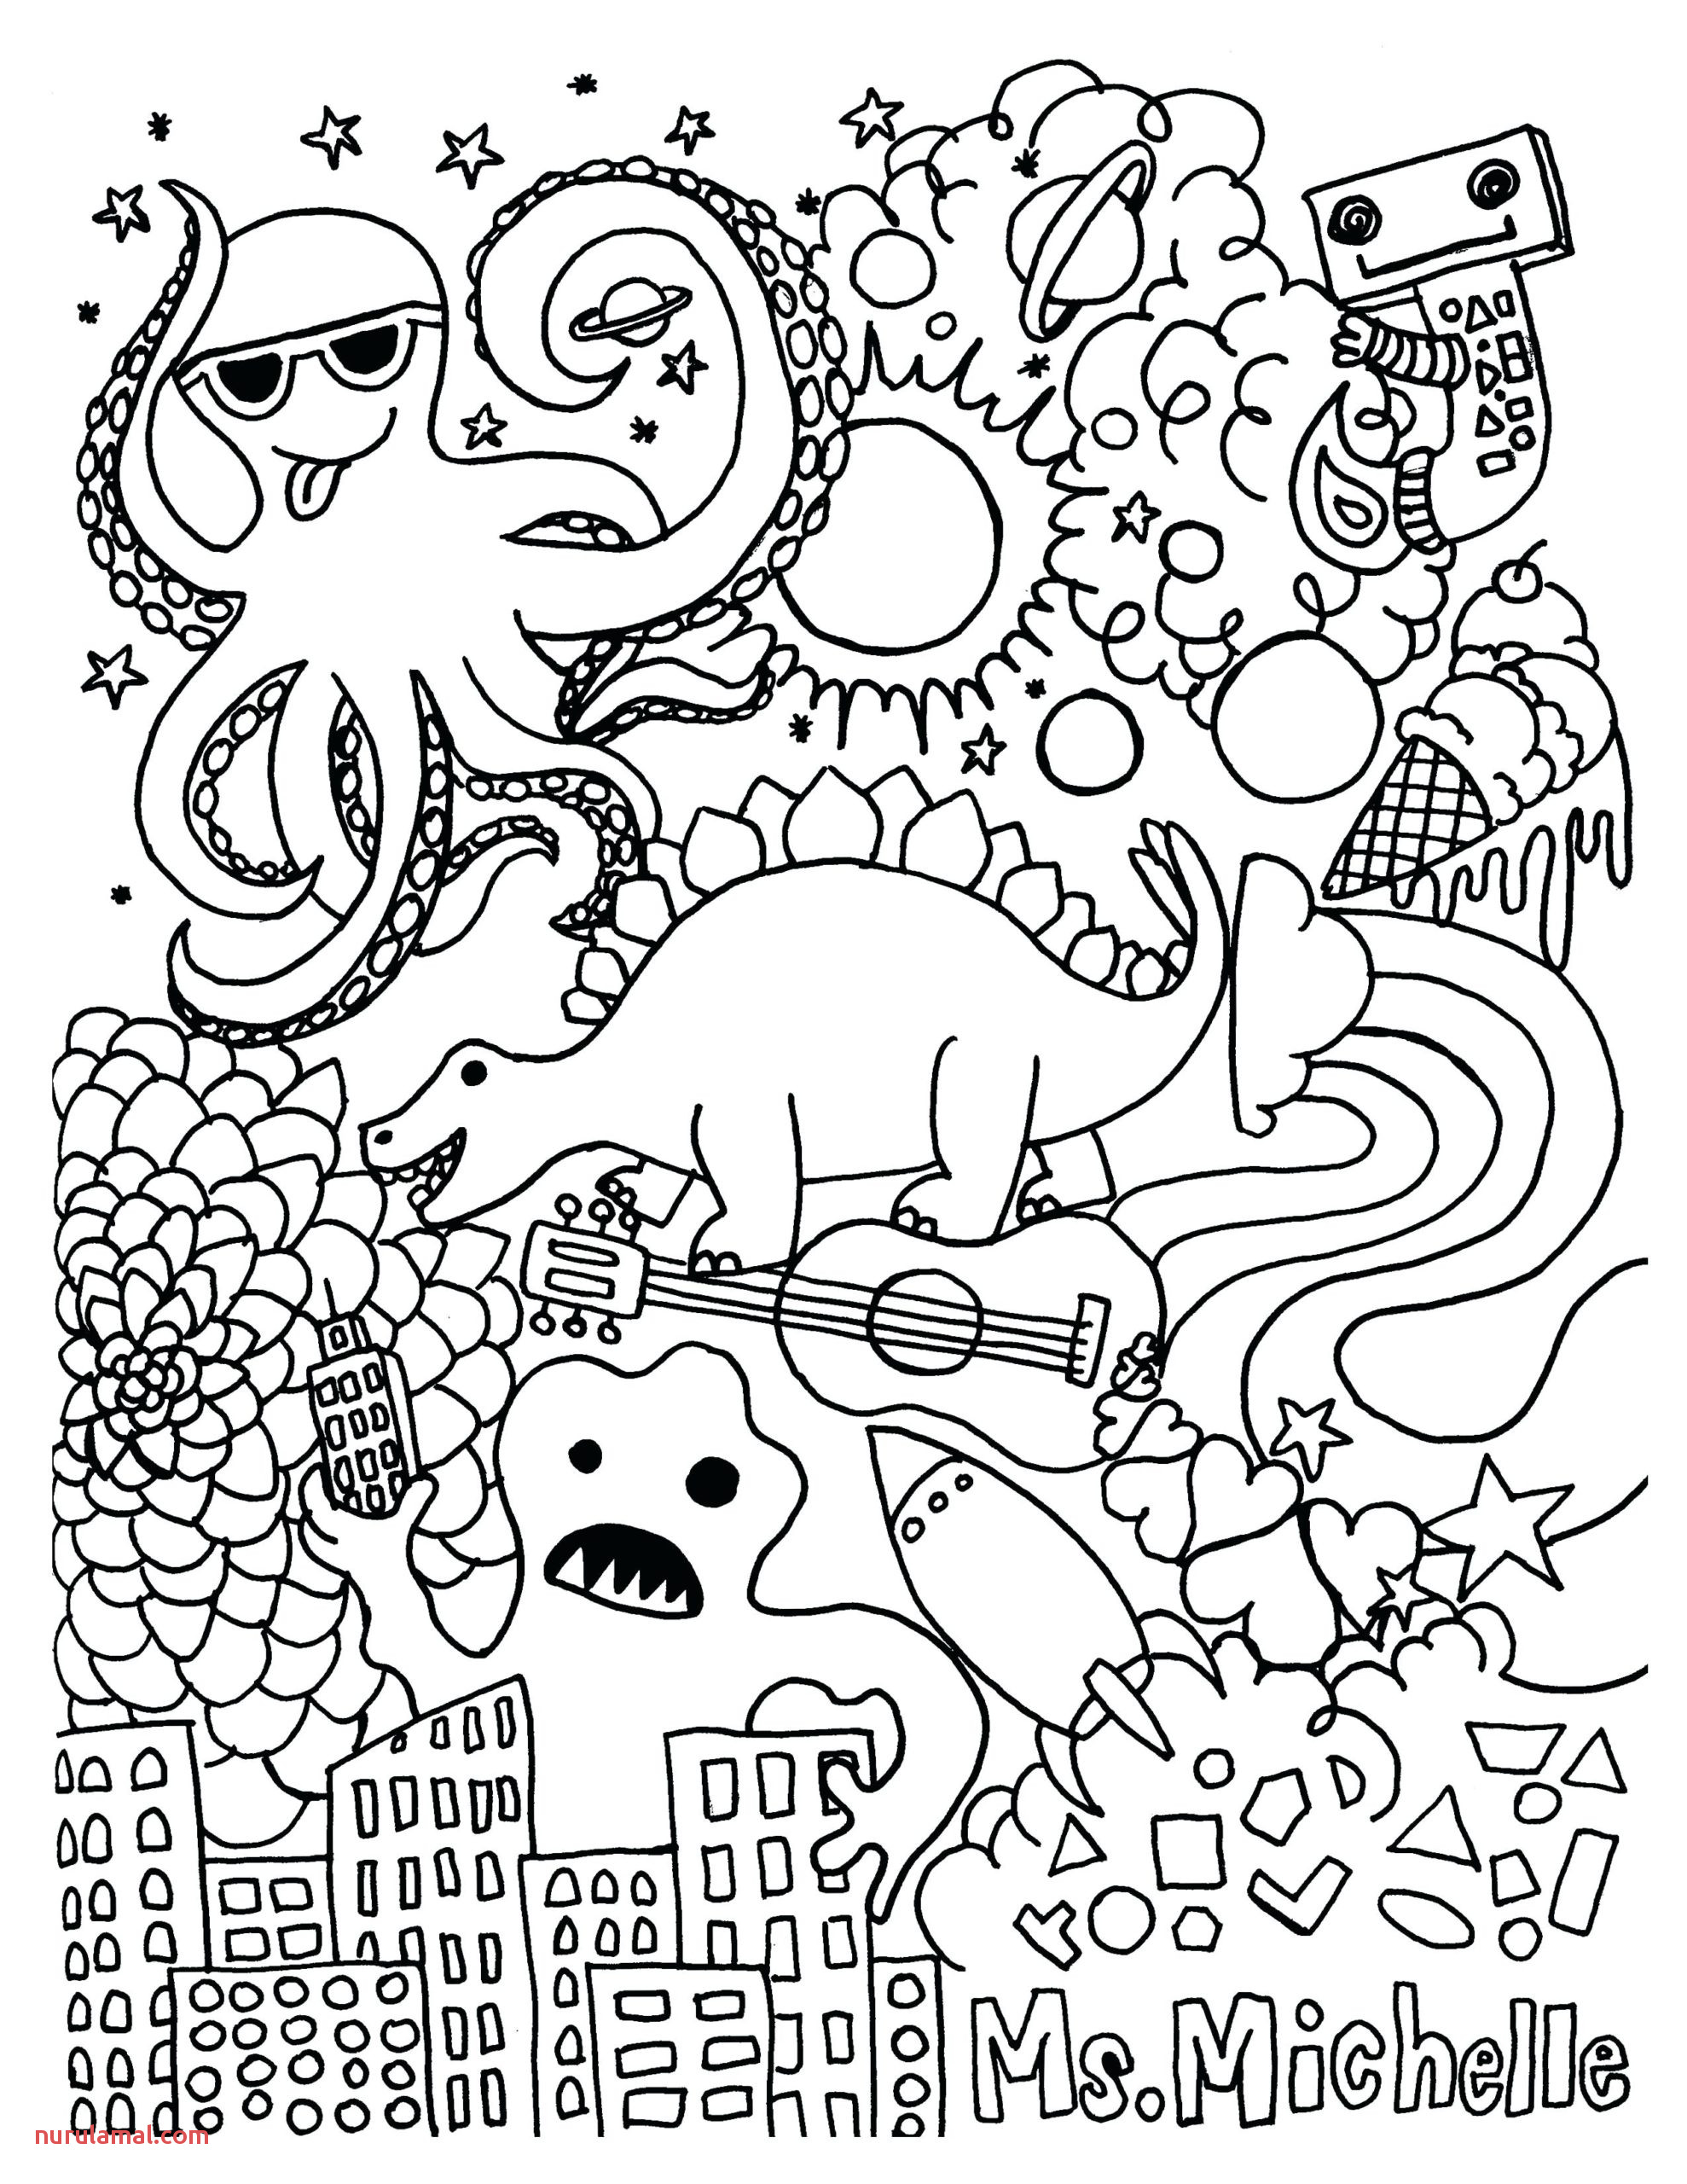 Coloring Pages Best Coloring Candy Color by Number for